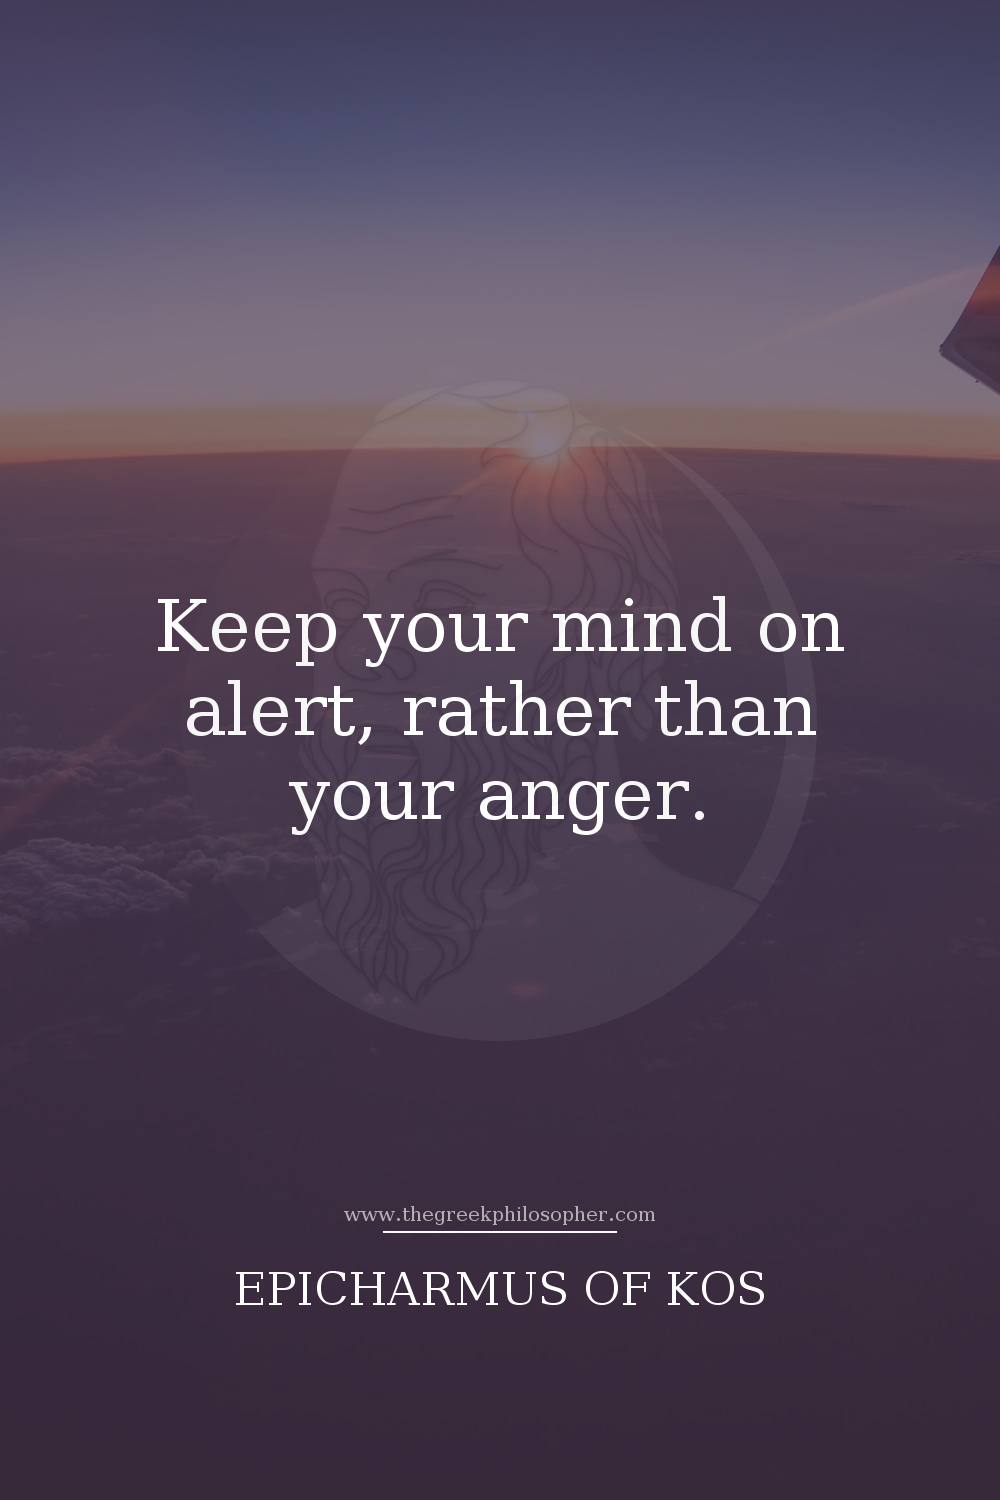 Epicharmus of Kos on Anger. Advice and wisdom from the ancient Greek  philosophers for a less stressful, hap… | Greek philosophers, Ancient greek  philosophers, Anger